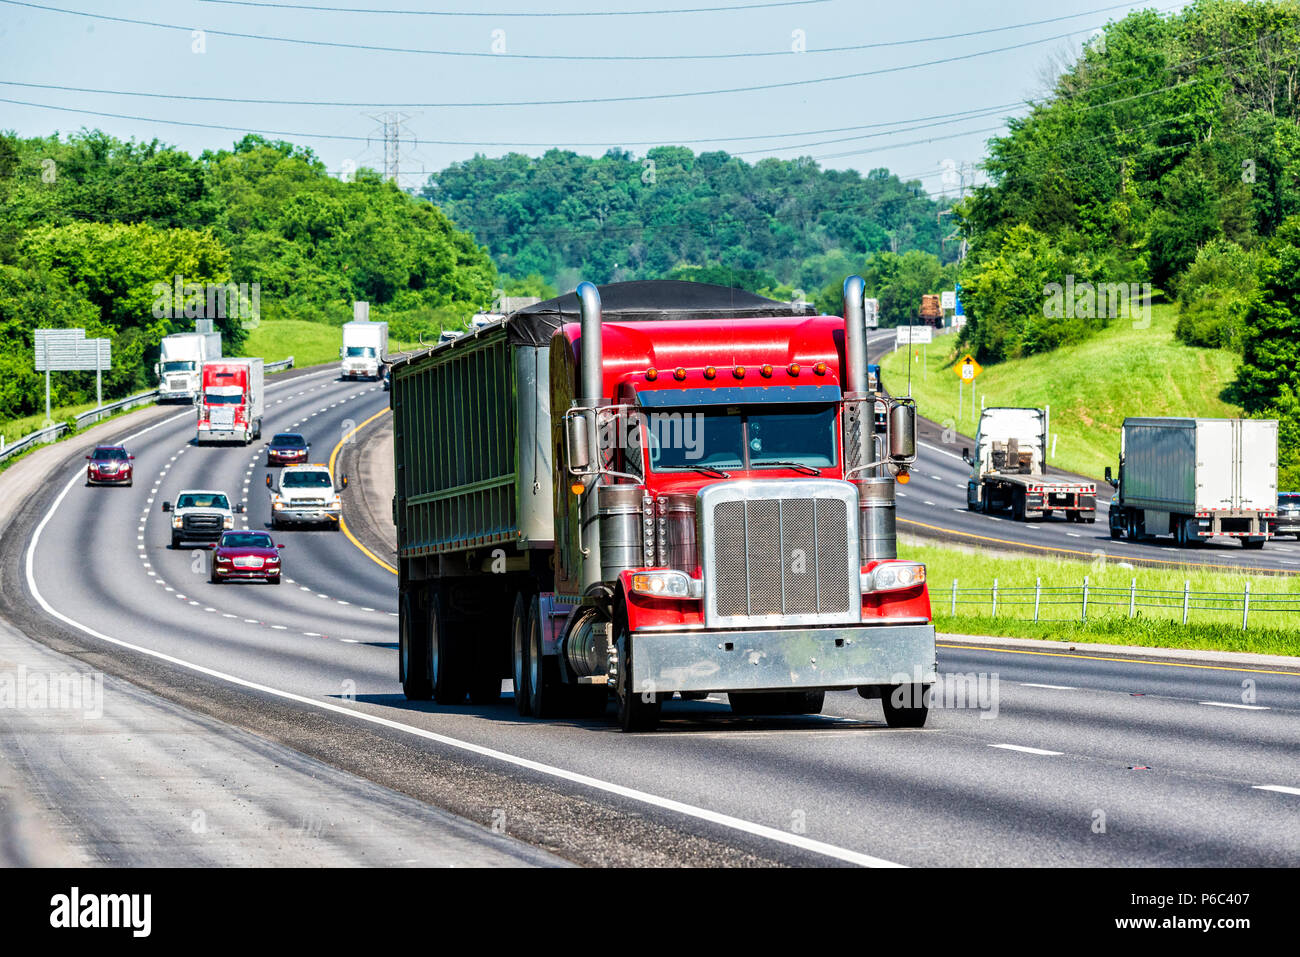 A heavily-loaded 18-wheeler travels the interstate. Note: All logos and identifying marks have been removed from all vehicles.  Image was created on h - Stock Image